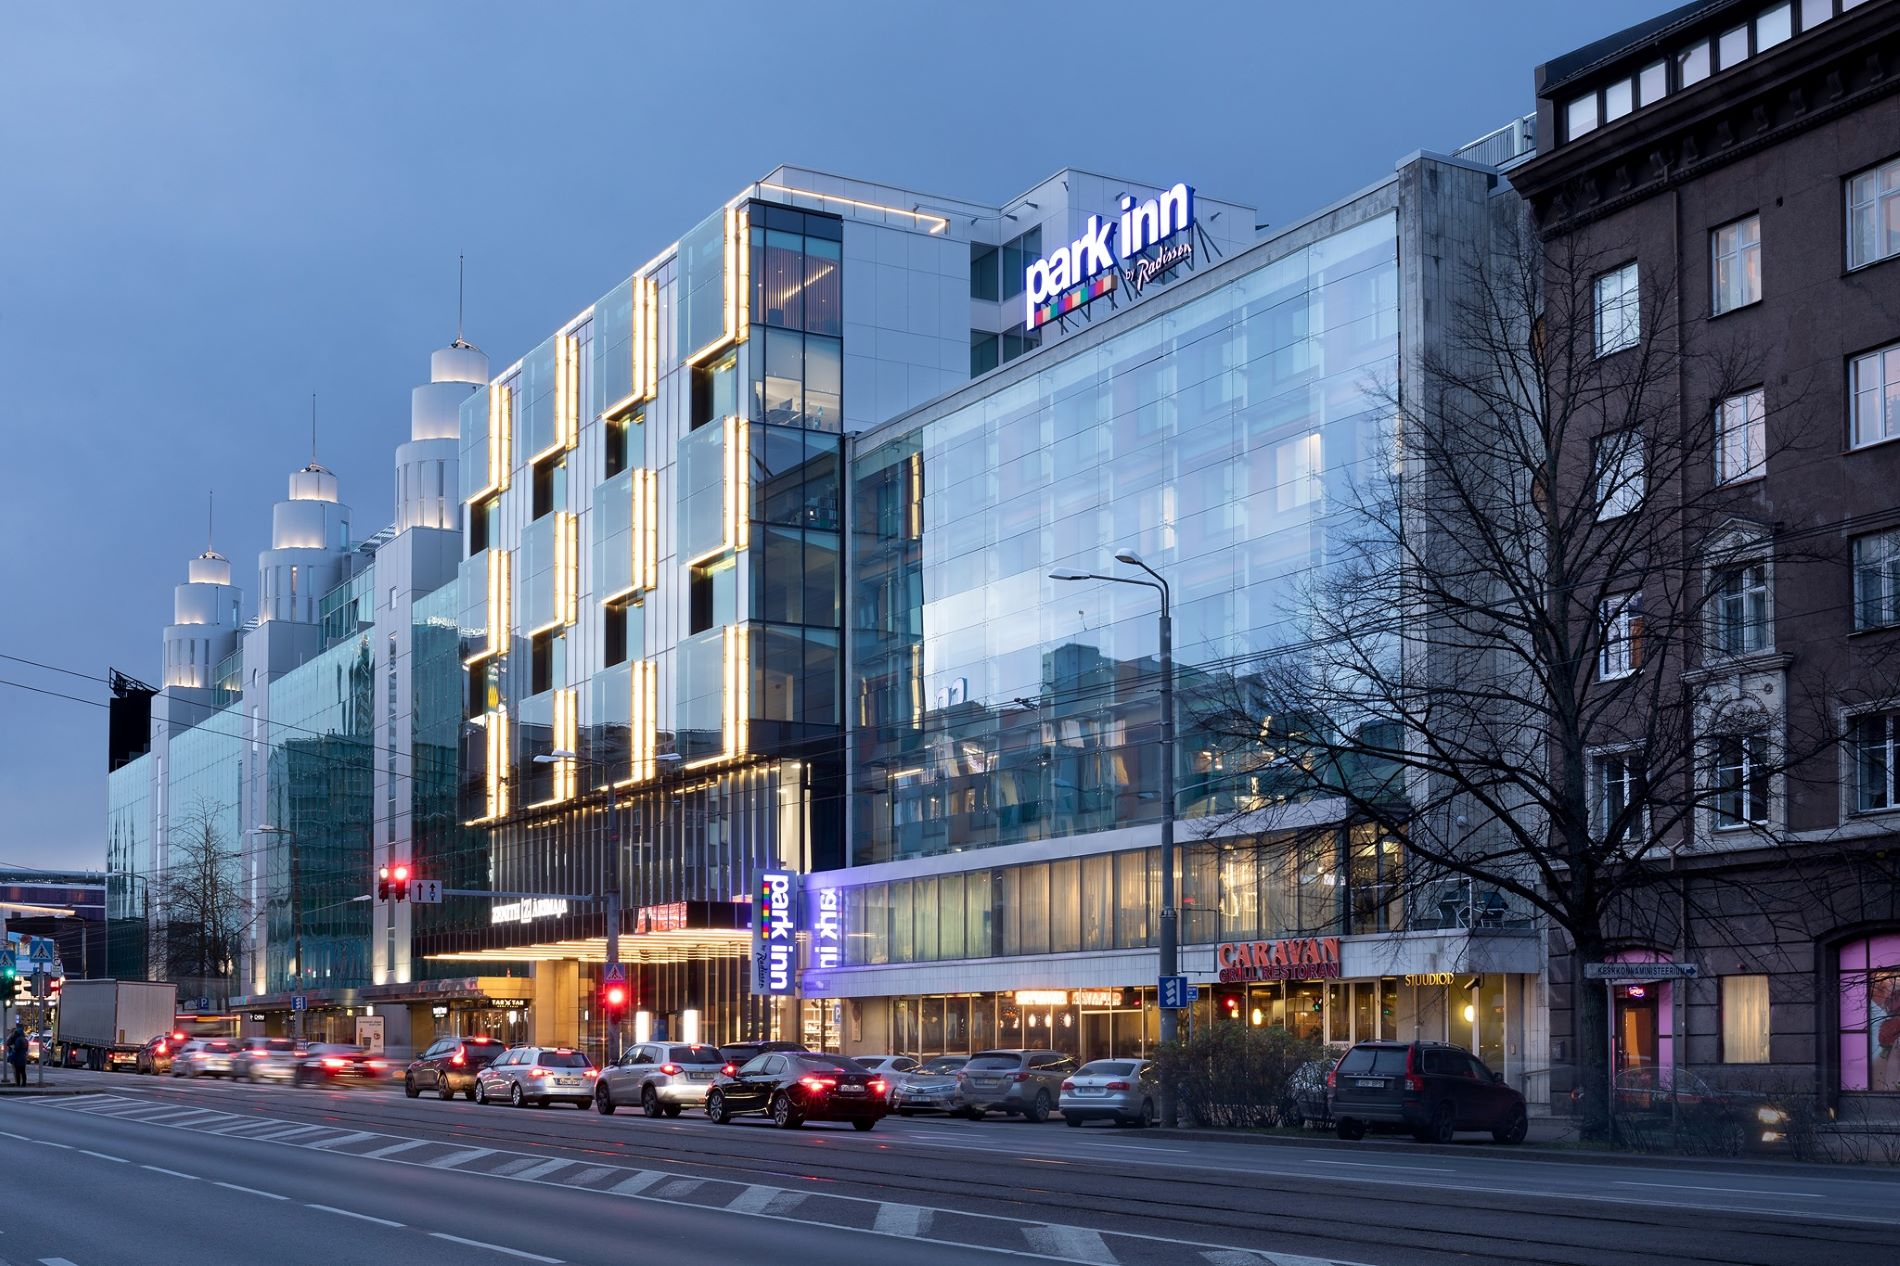 Park Inn by Radisson Central Tallinn, Eesti Foto: Park Inn by Radisson Central Tallinn